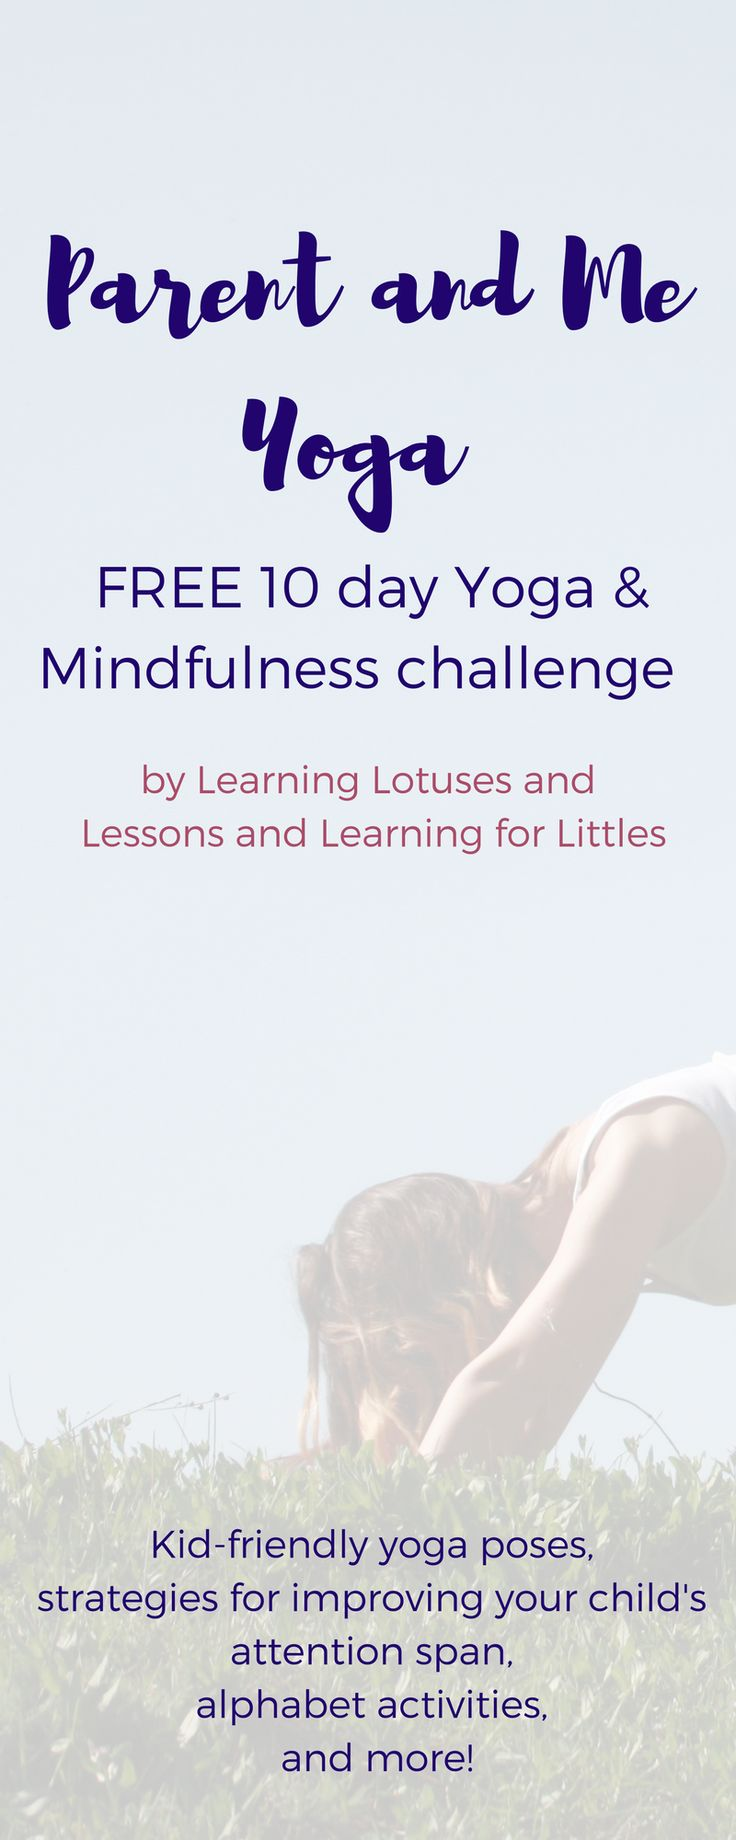 Sign up for the Parent&Me Yoga Challenge from Learning Lotuses & Lessons and Learning for Littles!